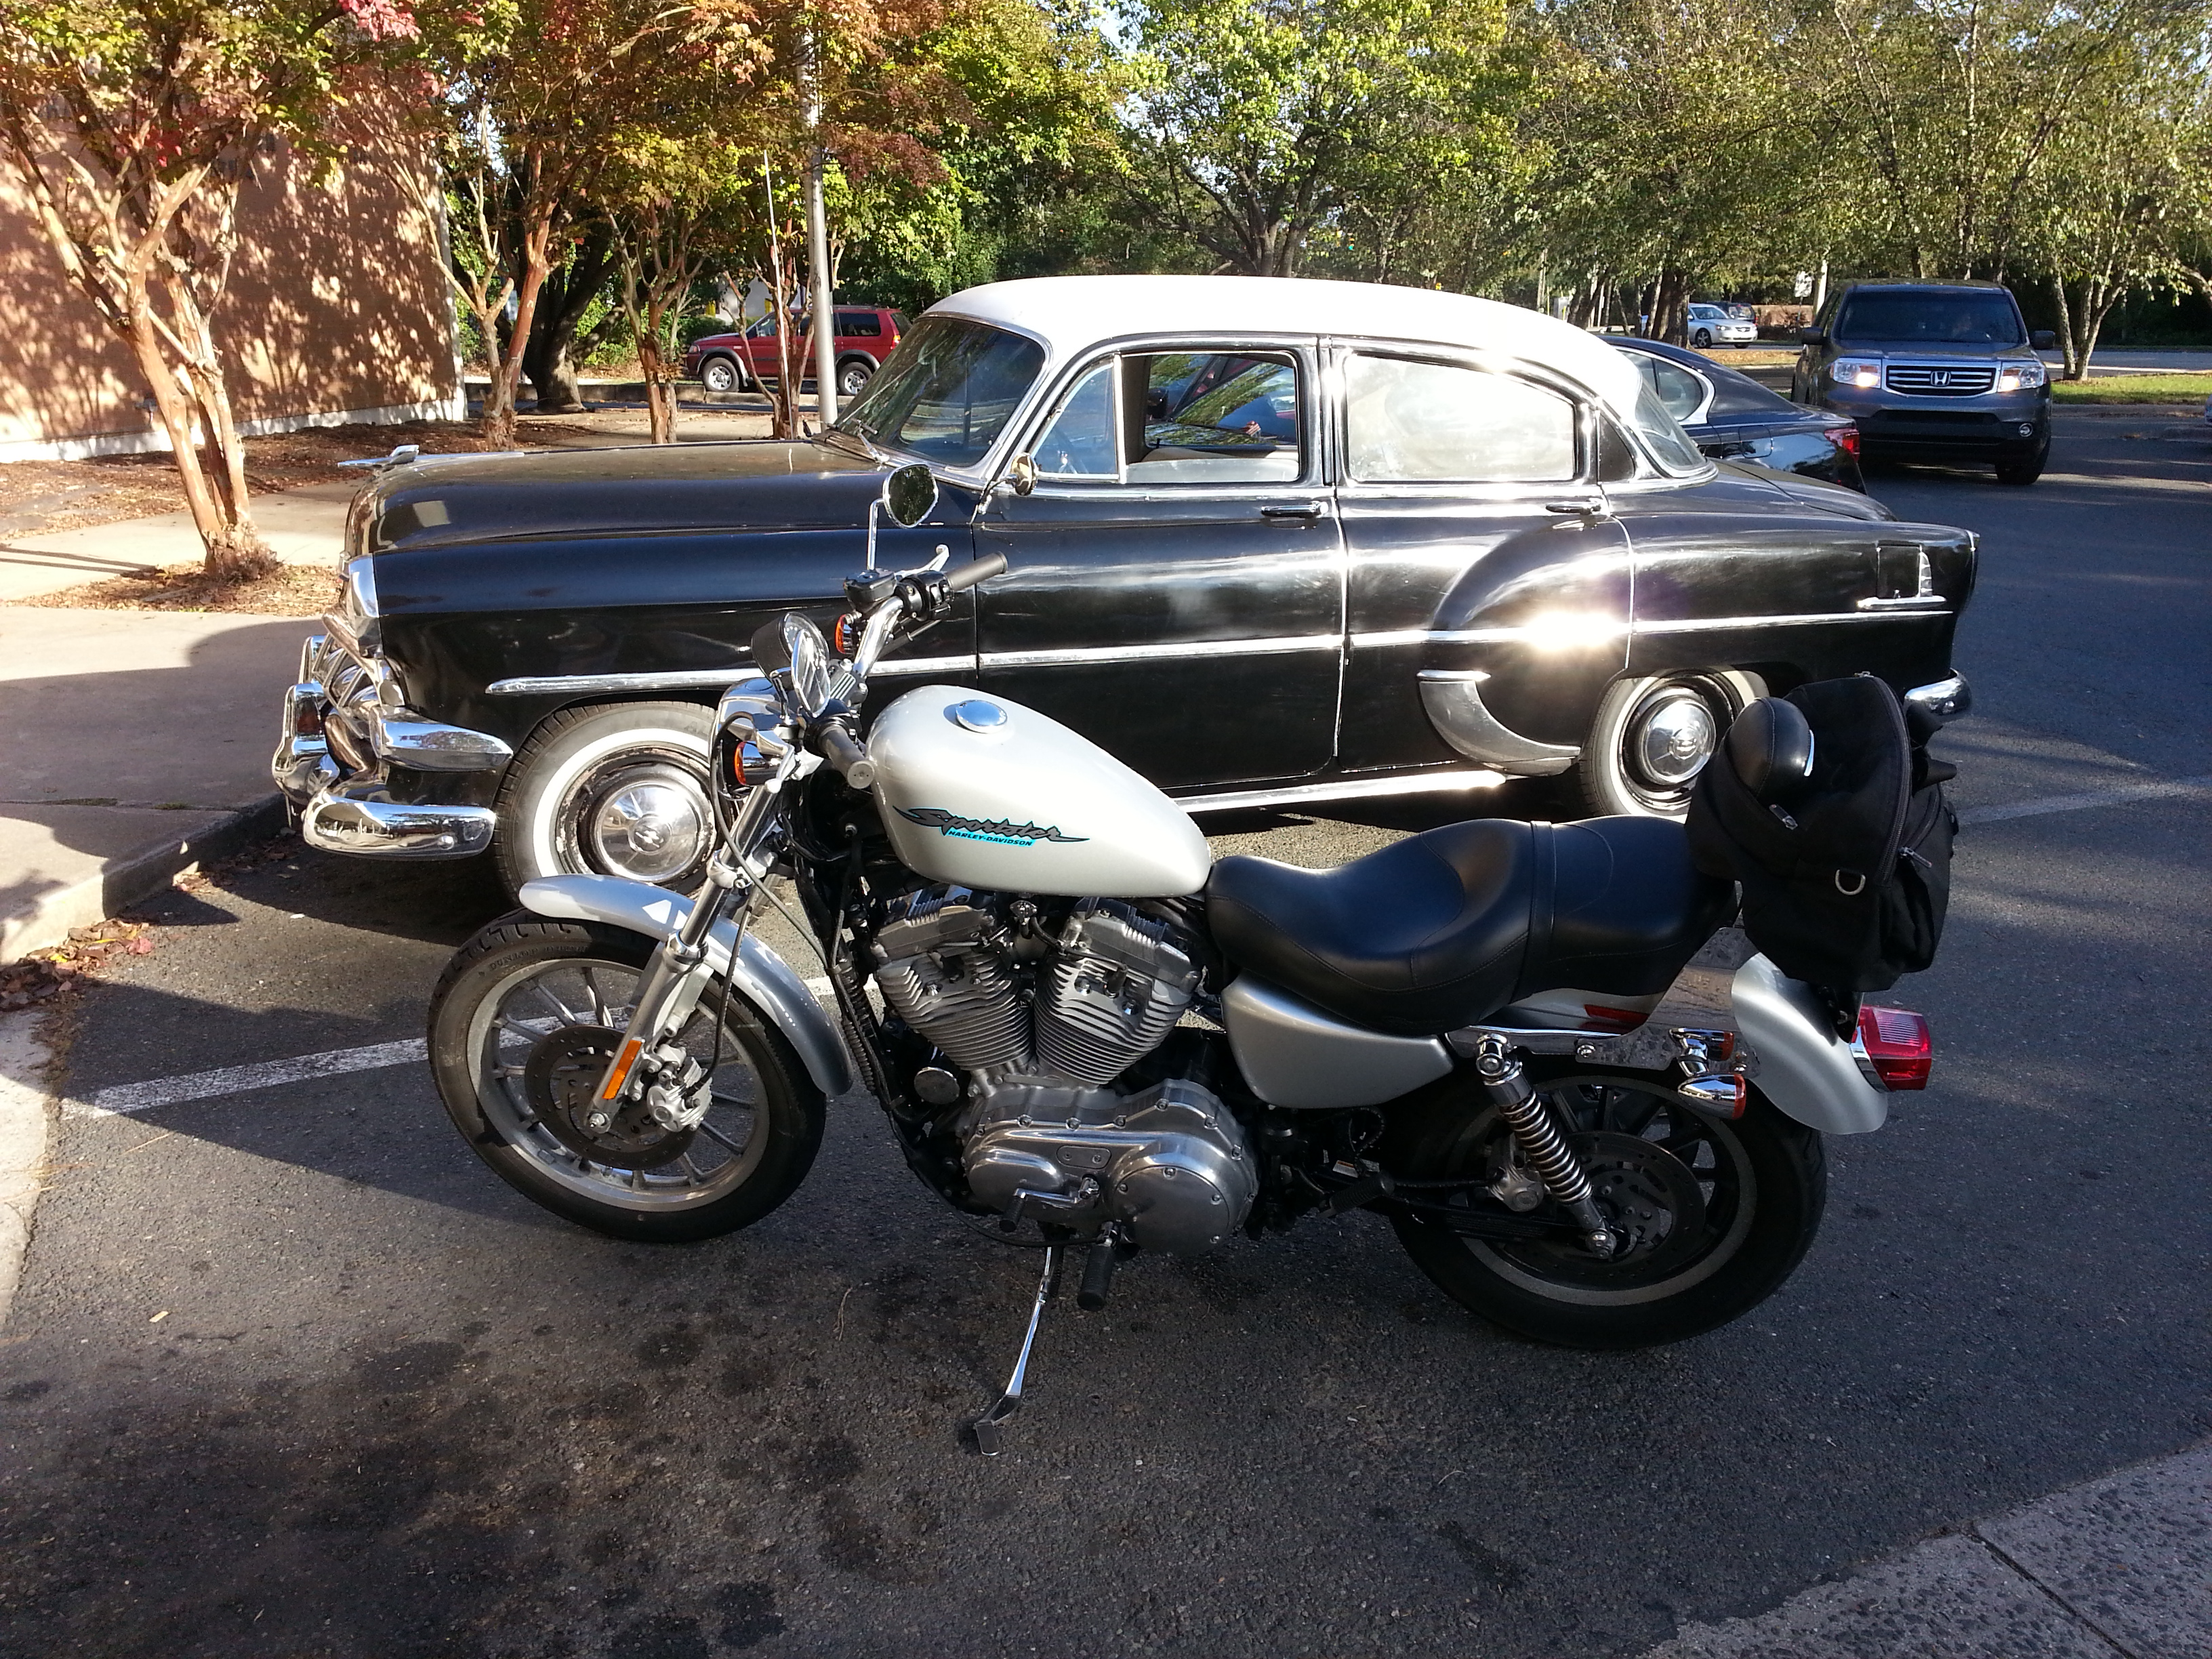 Rocinante hanging w a '59 Chevy at the post office